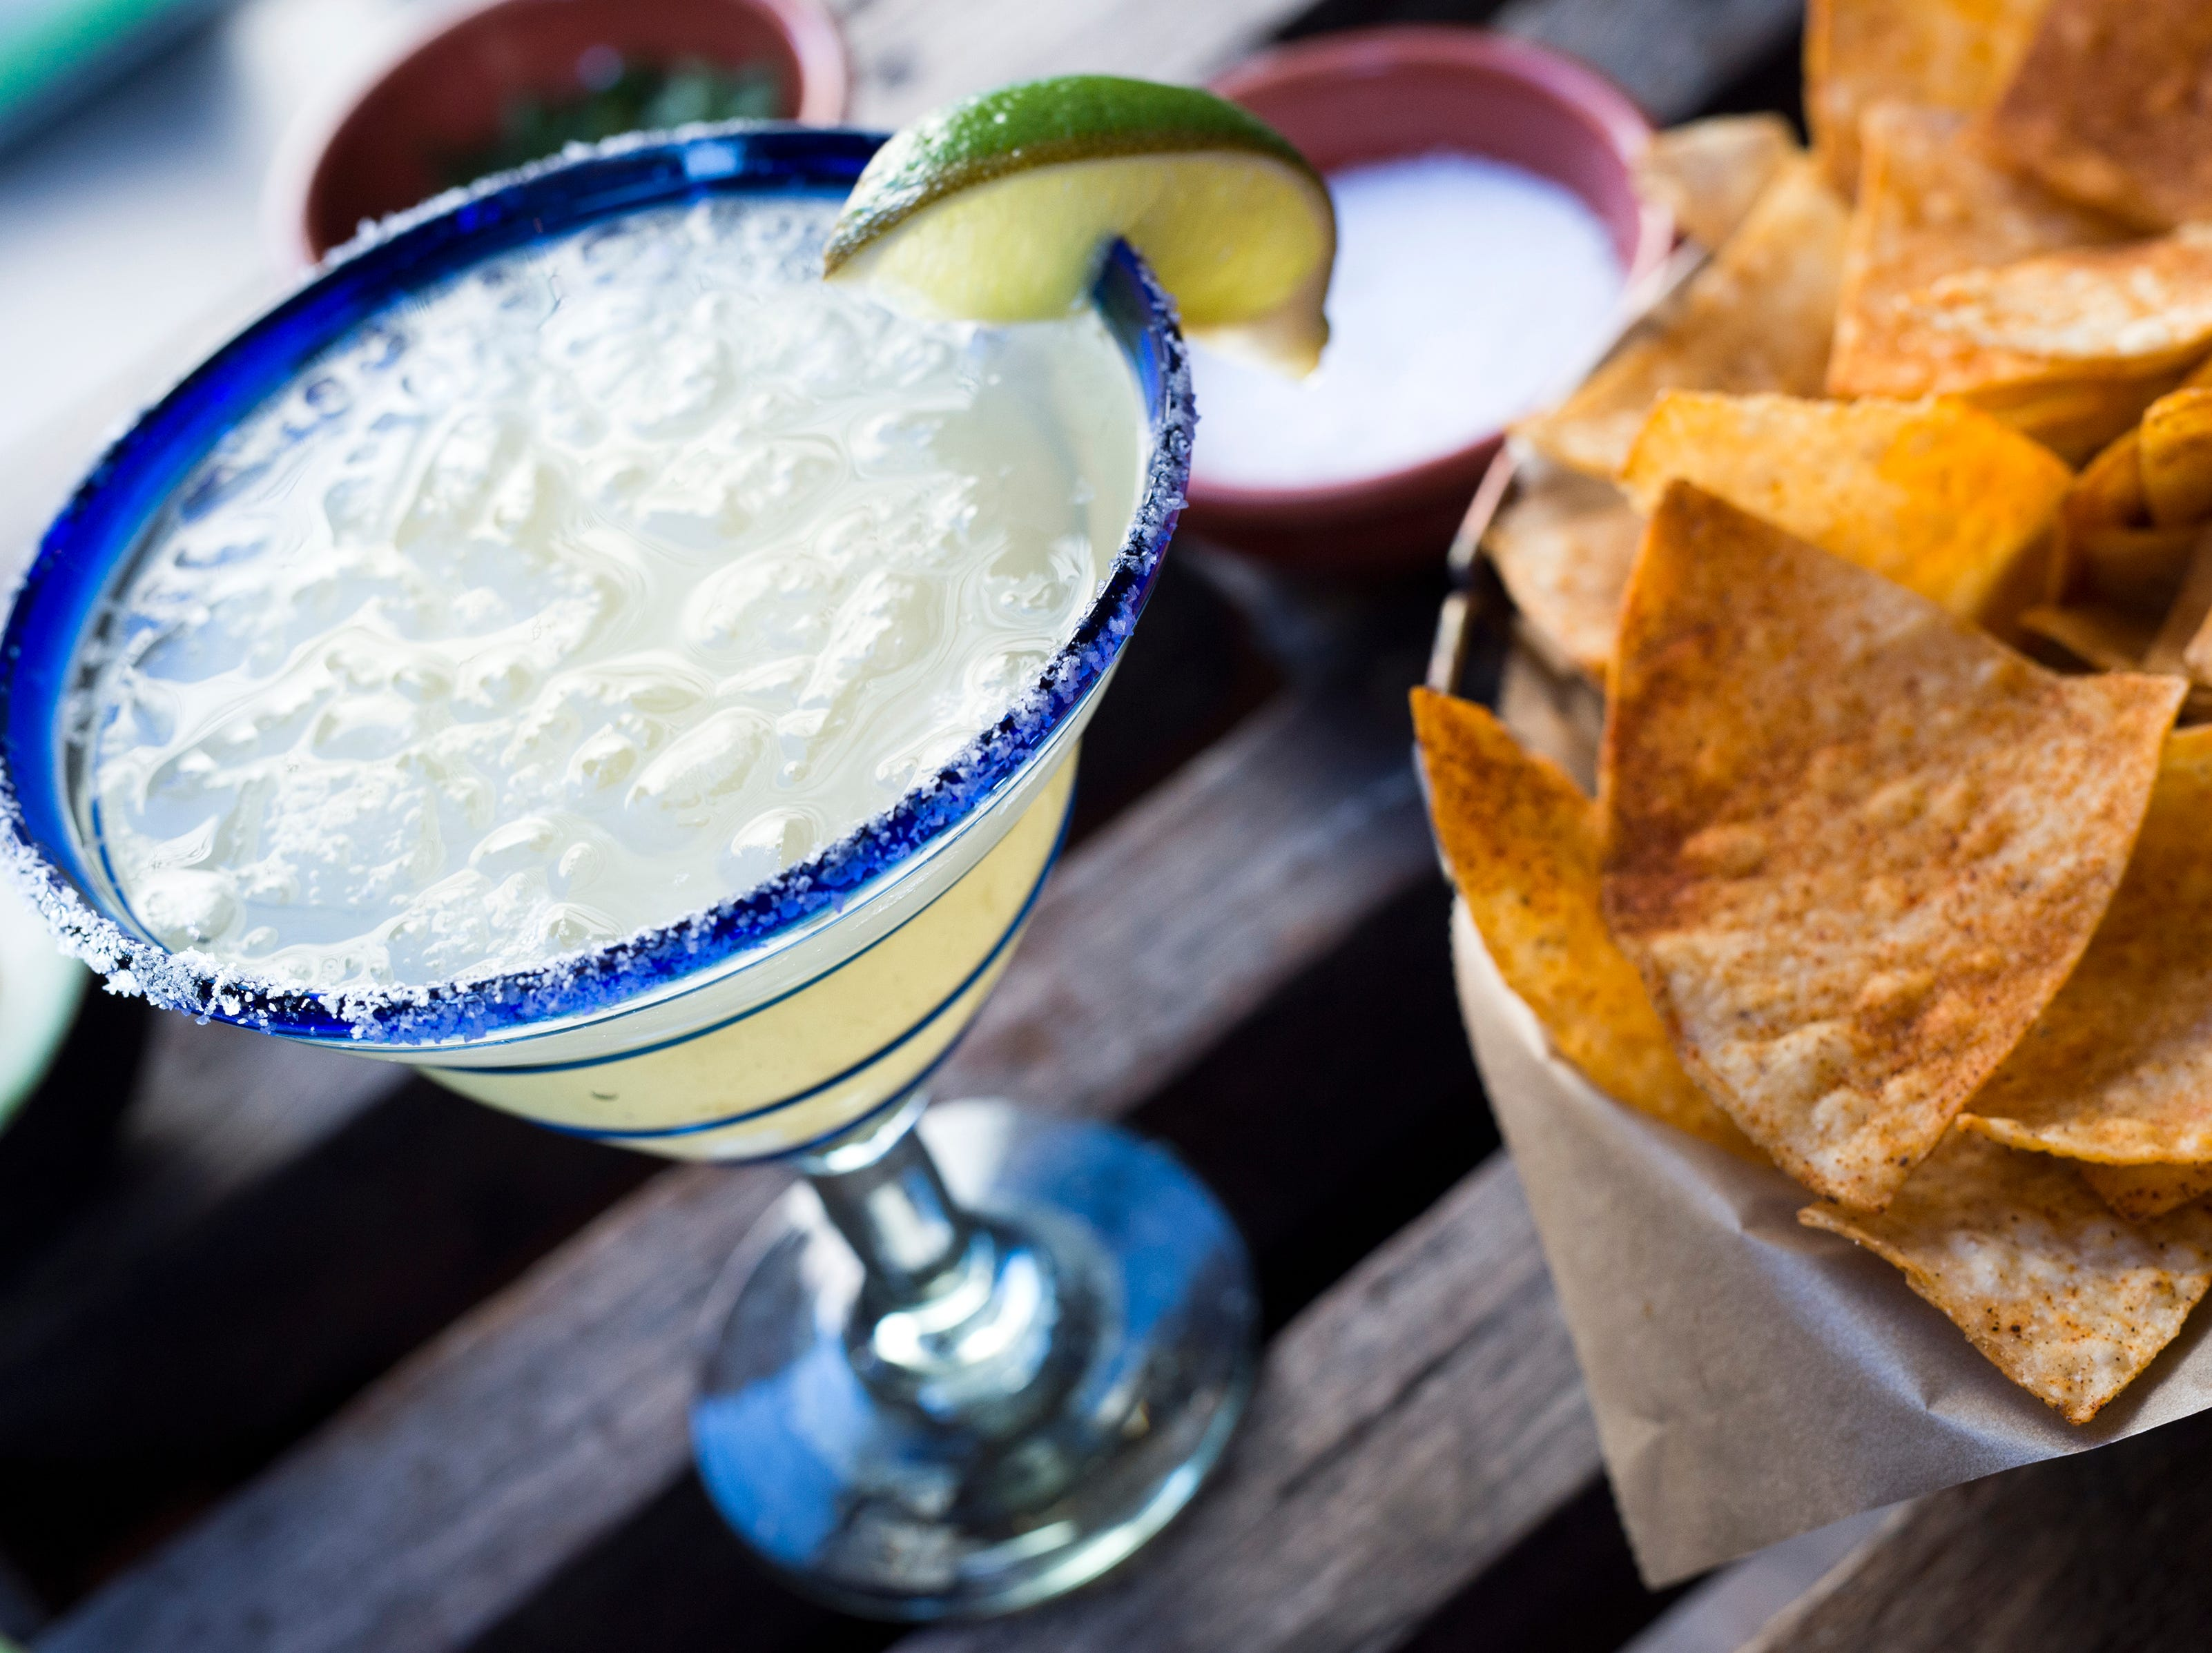 Rocco's Tacos & Tequila Bar features traditional Margaritas as well as at least 10 other flavors from blood orange to watermelon.